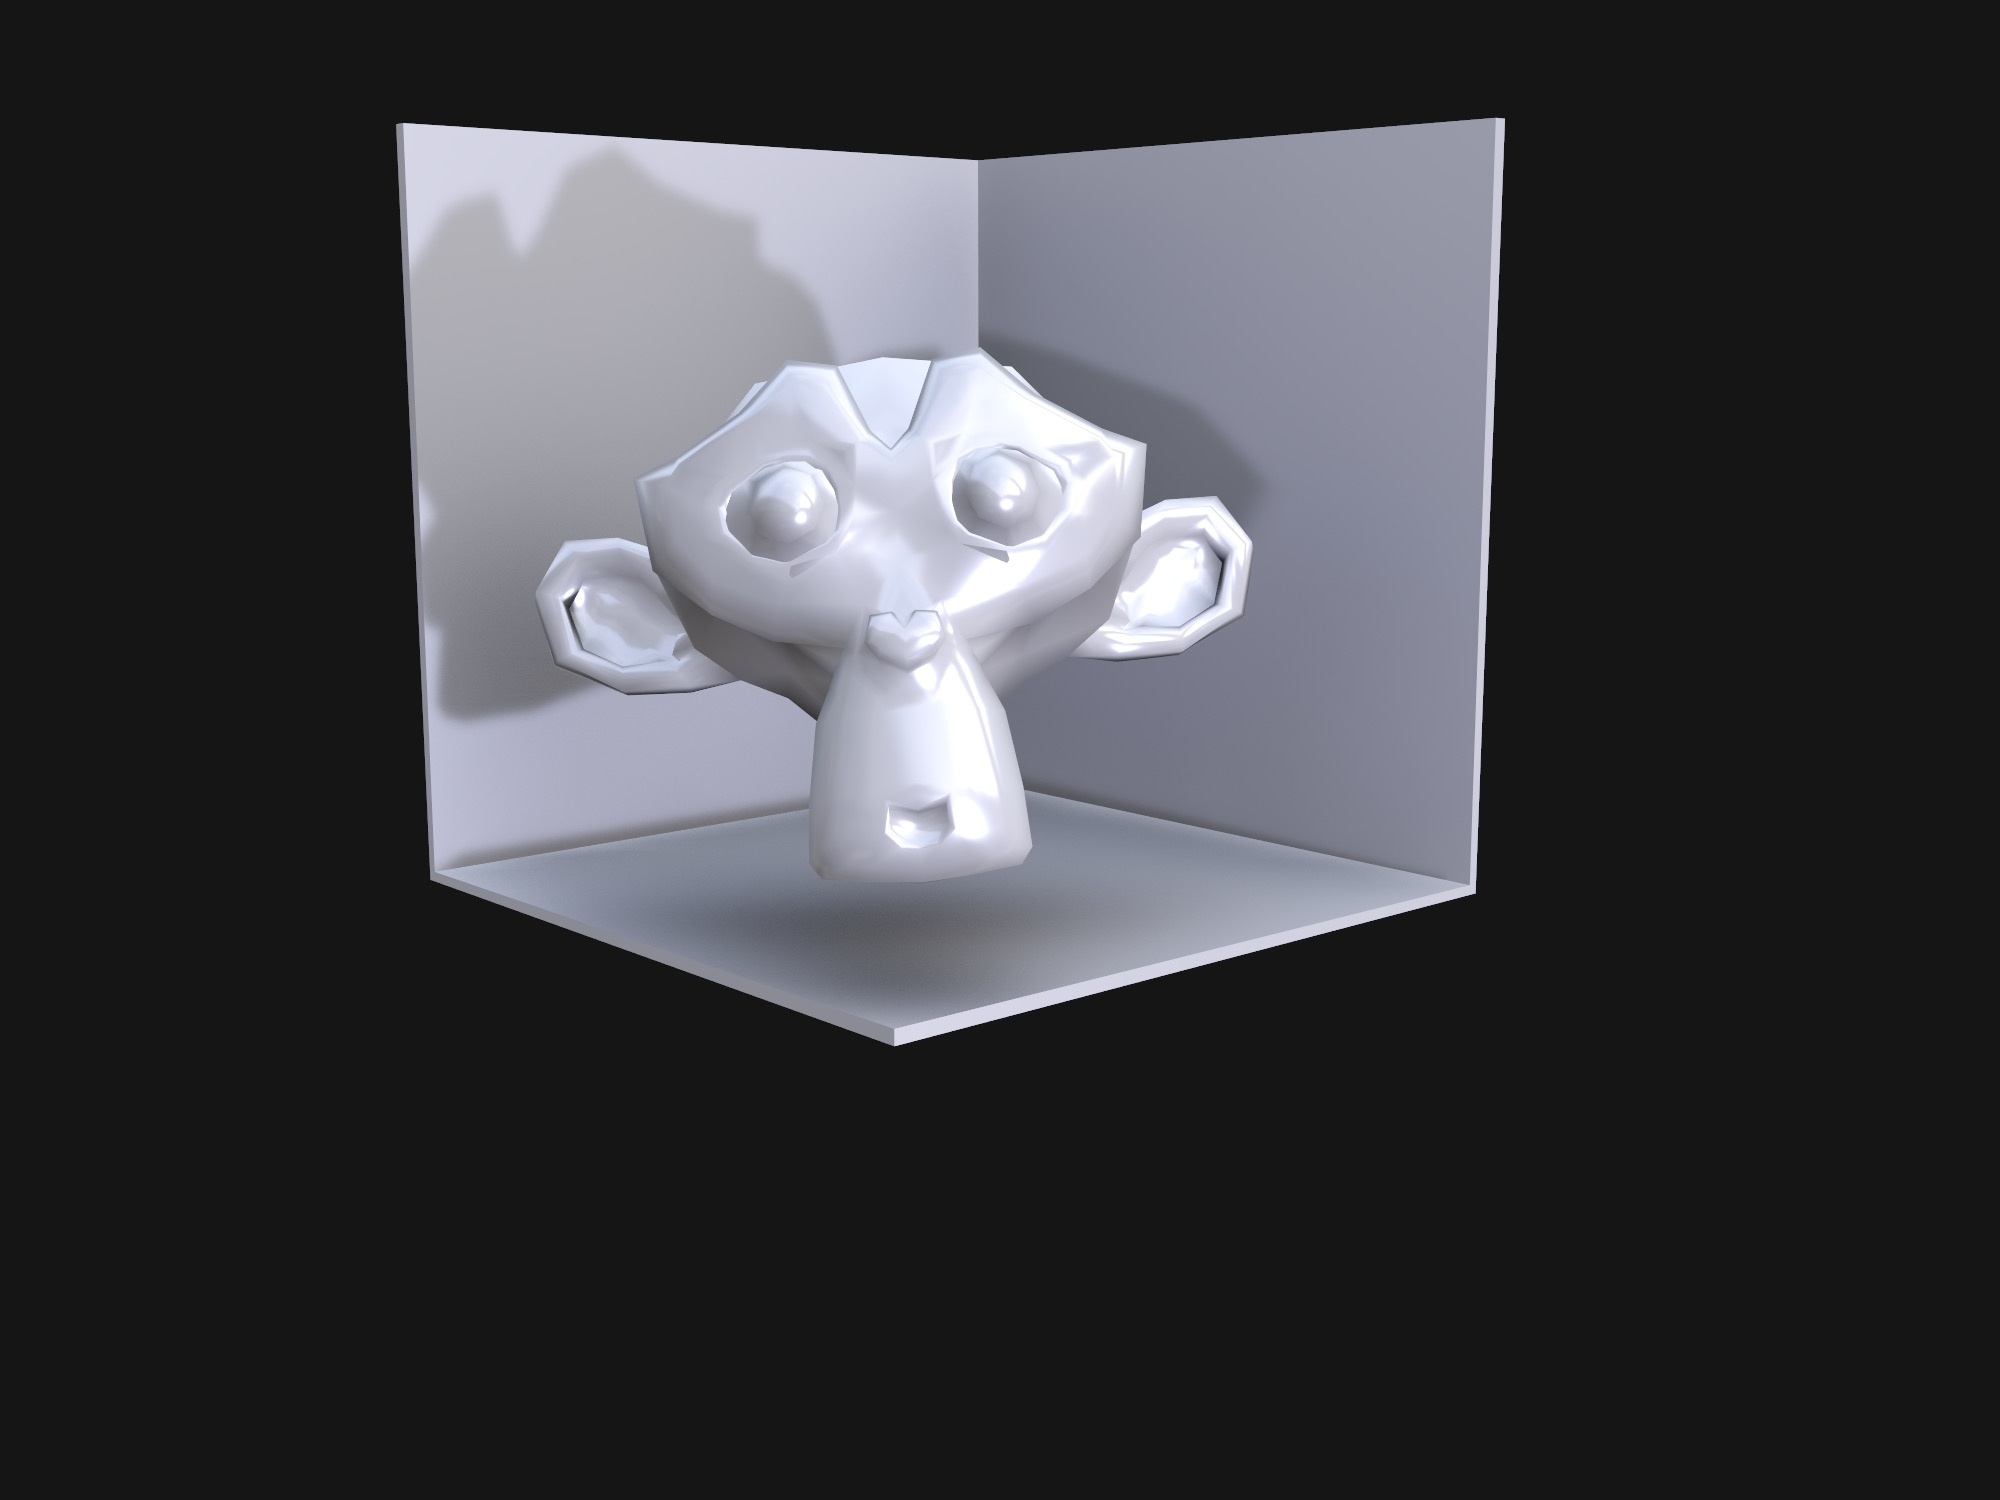 Monkey Test 3D (copy) - 3D design by Jimmy Gunawan Dec 21, 2018